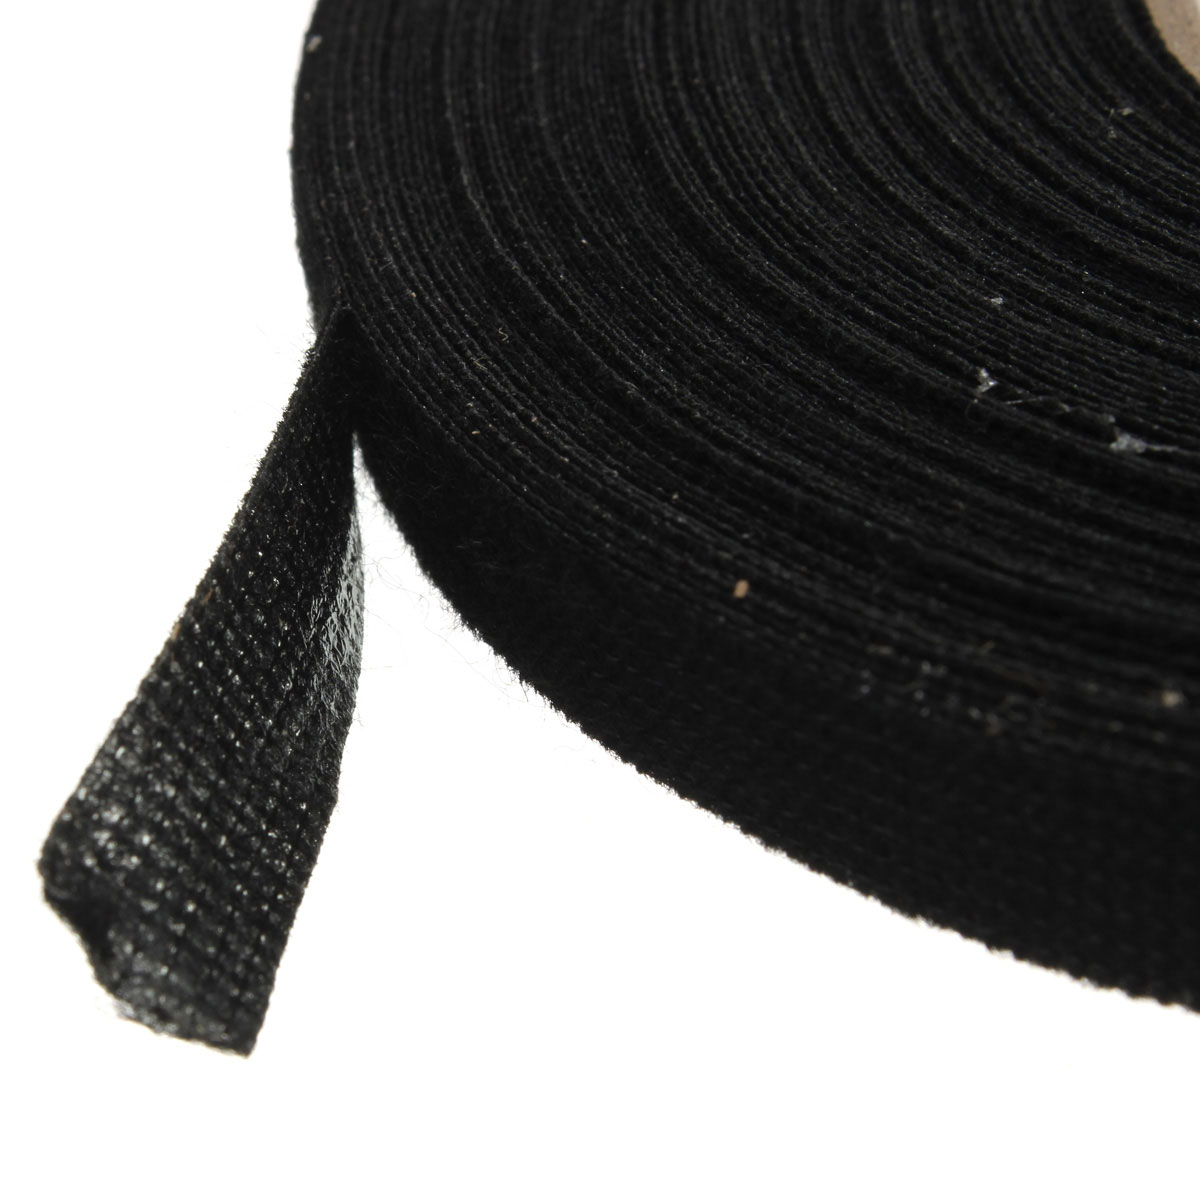 9mm x 25m Black Adhesive Cloth Fabric Tape Cable Looms Wiring Fabric Tapes